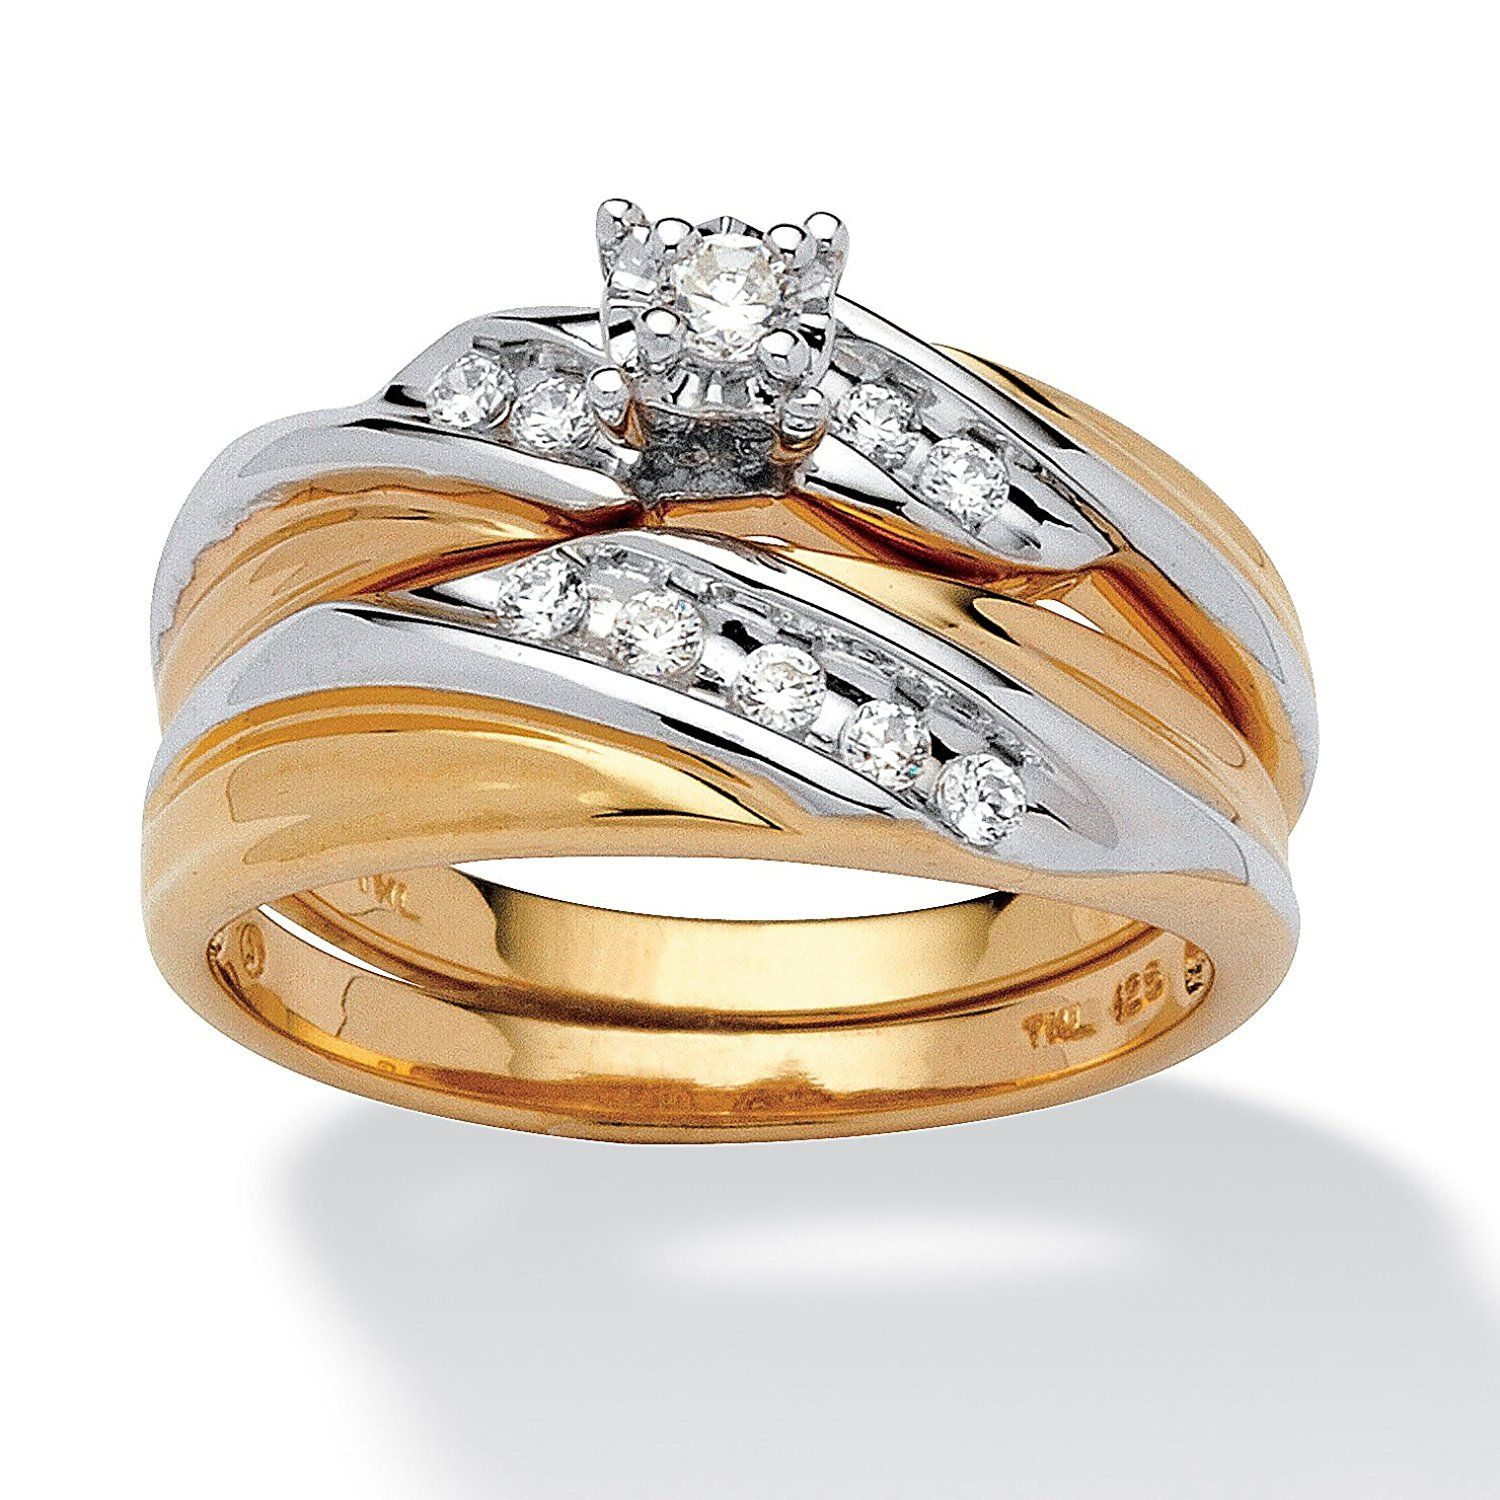 Palm Beach Jewelry Tutone 18k Gold over Sterling Silver